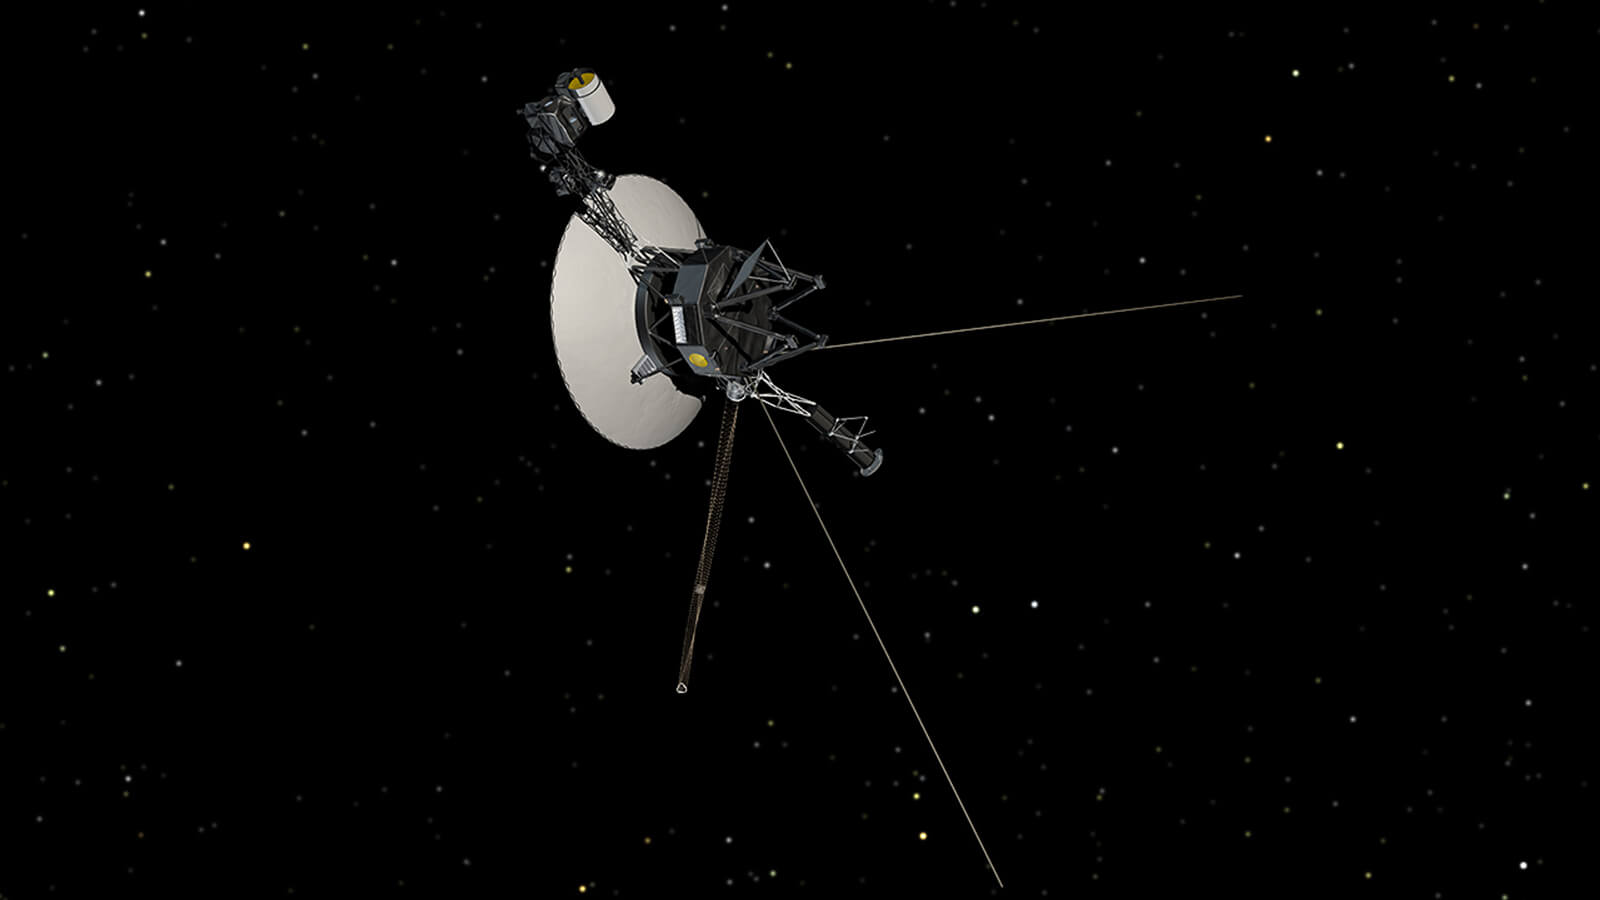 NASA managed to establish contact with the probe Voyager 2 after the mysterious failure